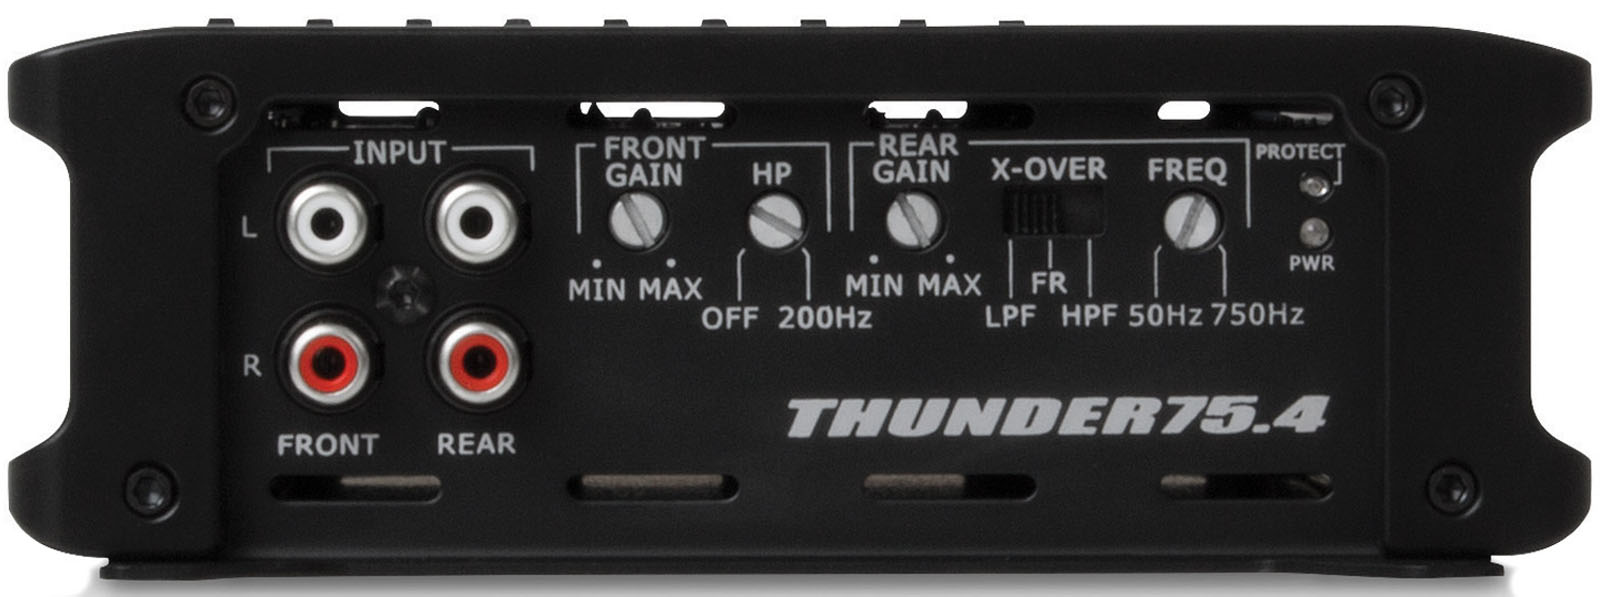 Car Amplifier Tuning And Features | MTX Audio - Serious